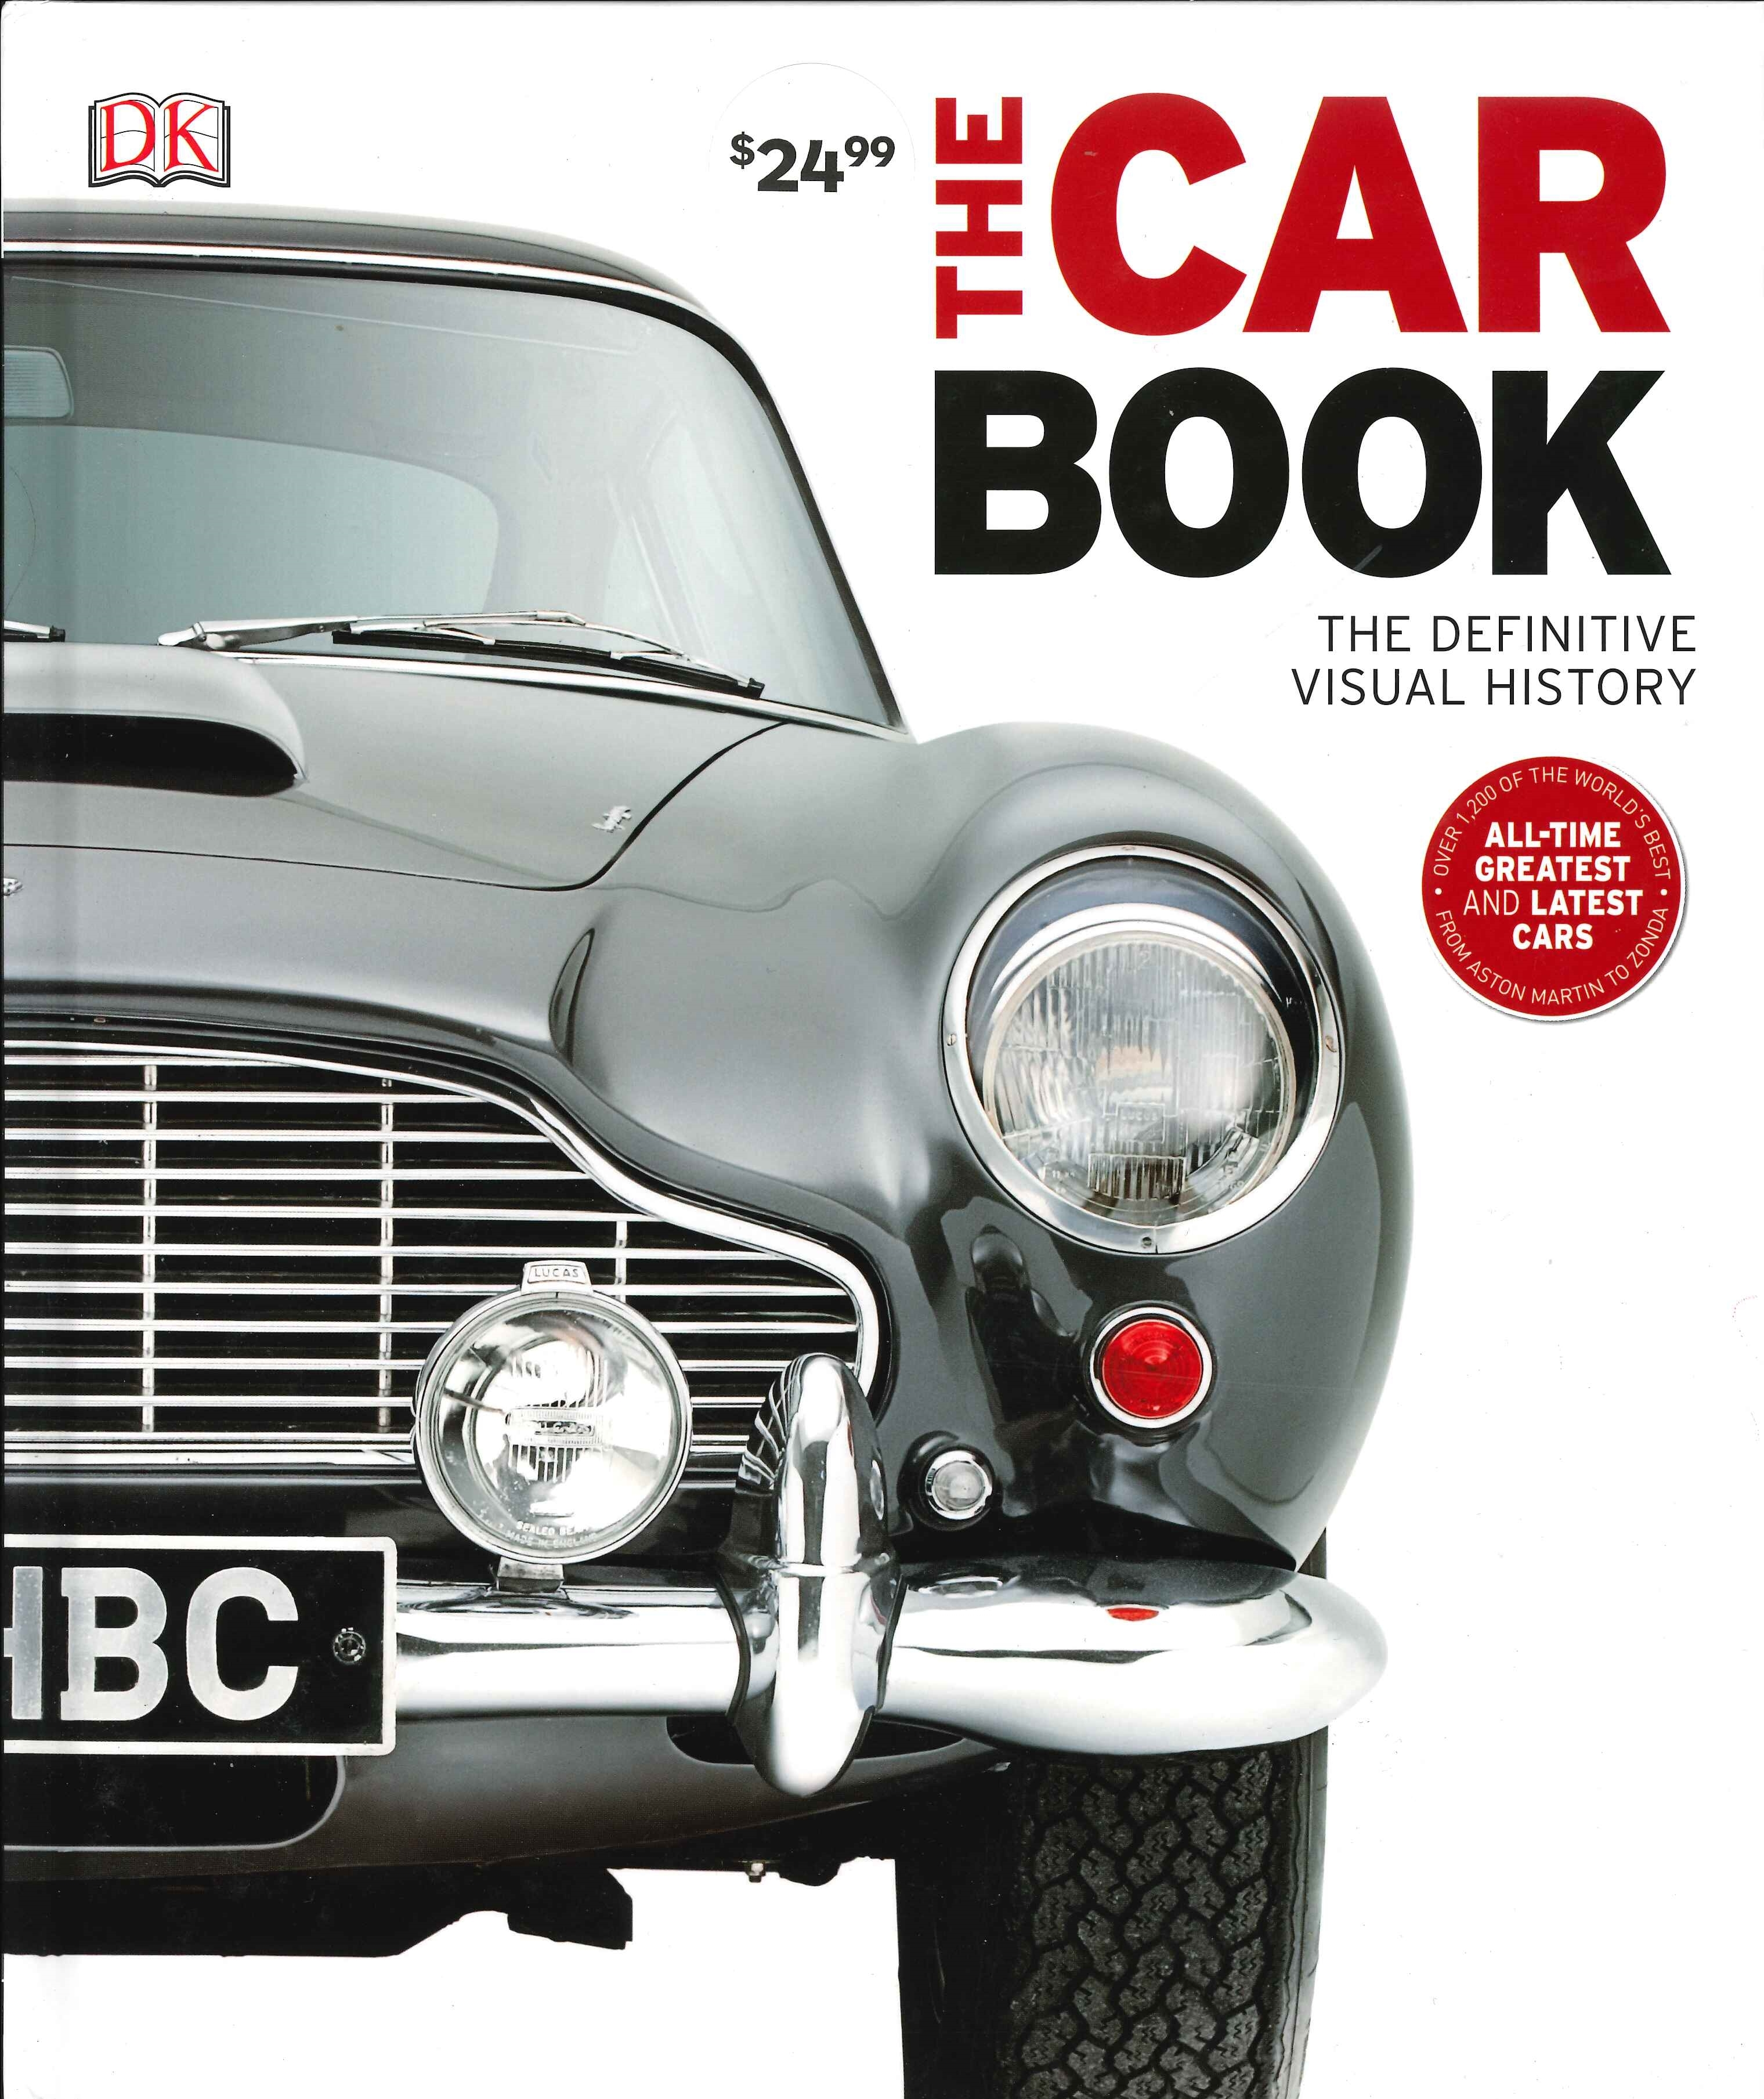 The Car Book >> The Car Book The Definitive Visual History By Dk Penguin Books